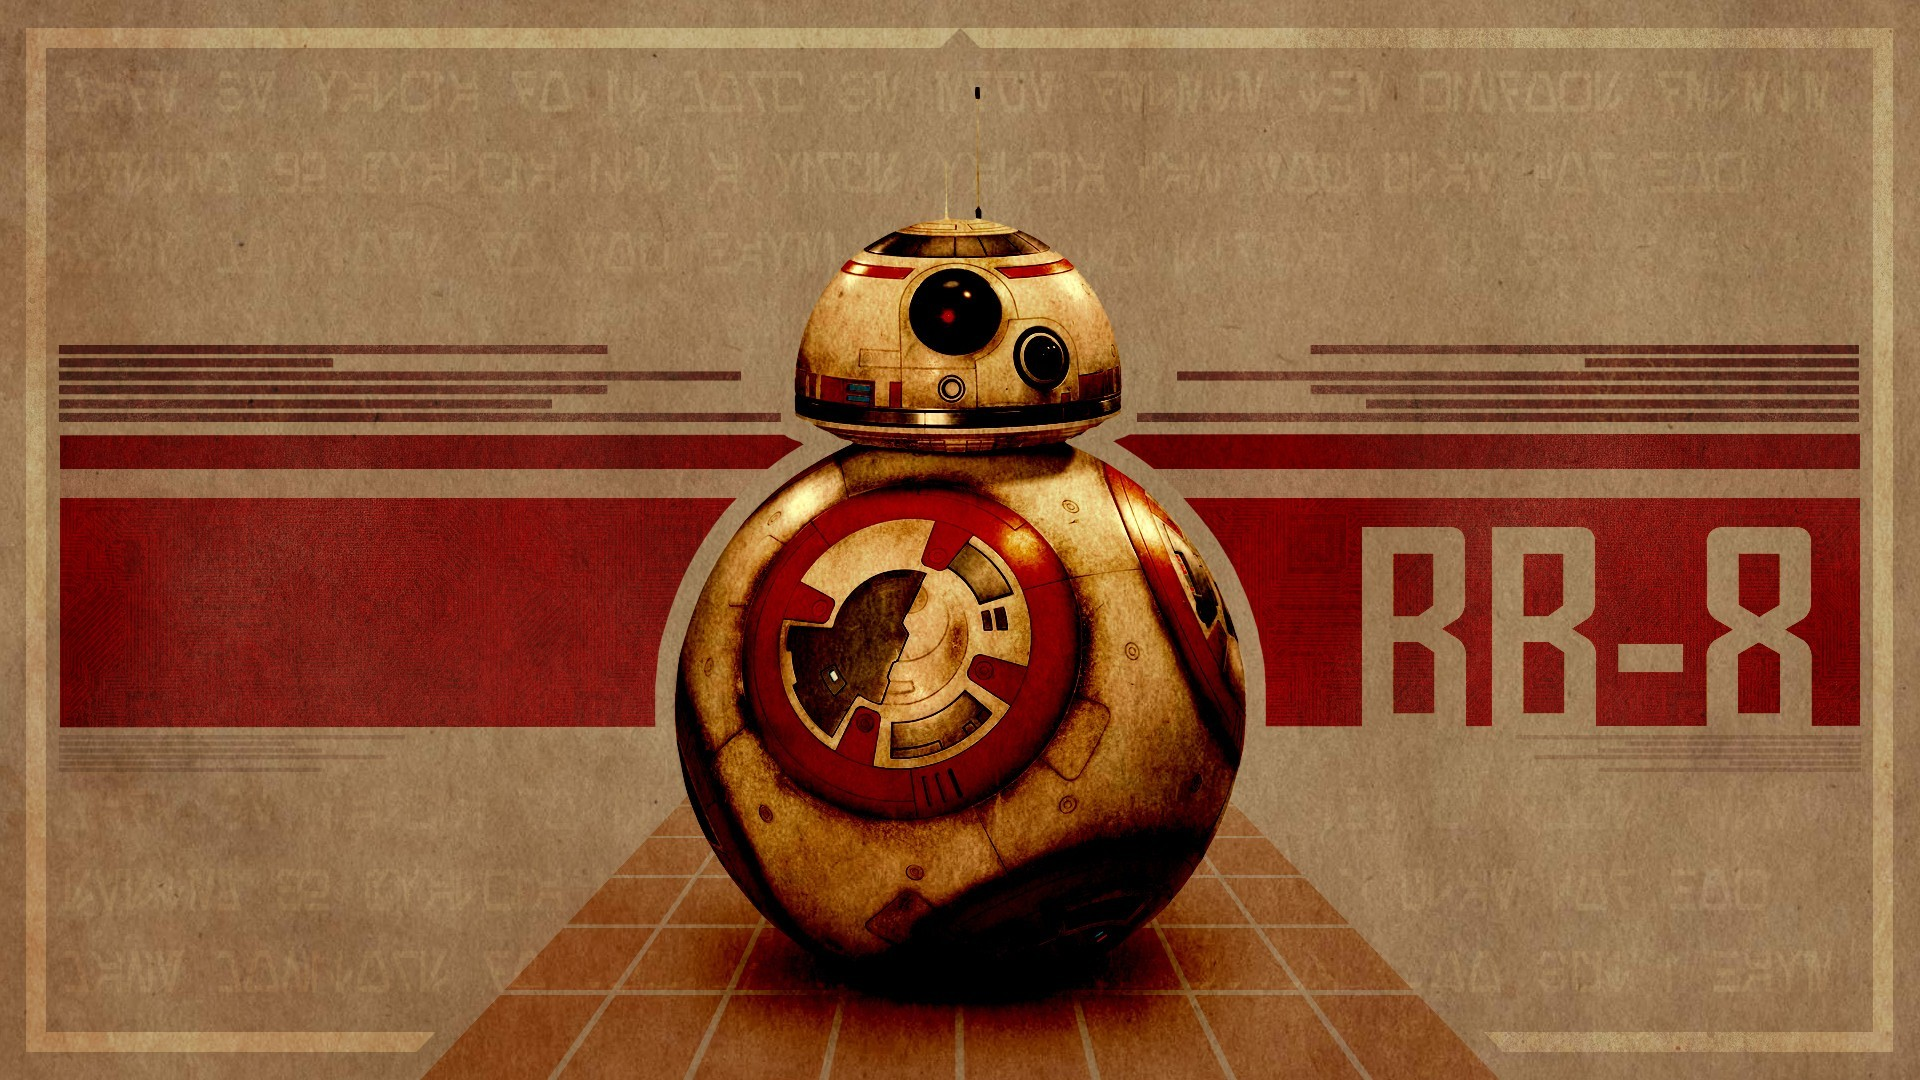 72 Bb 8 Wallpapers on WallpaperPlay 1920x1080